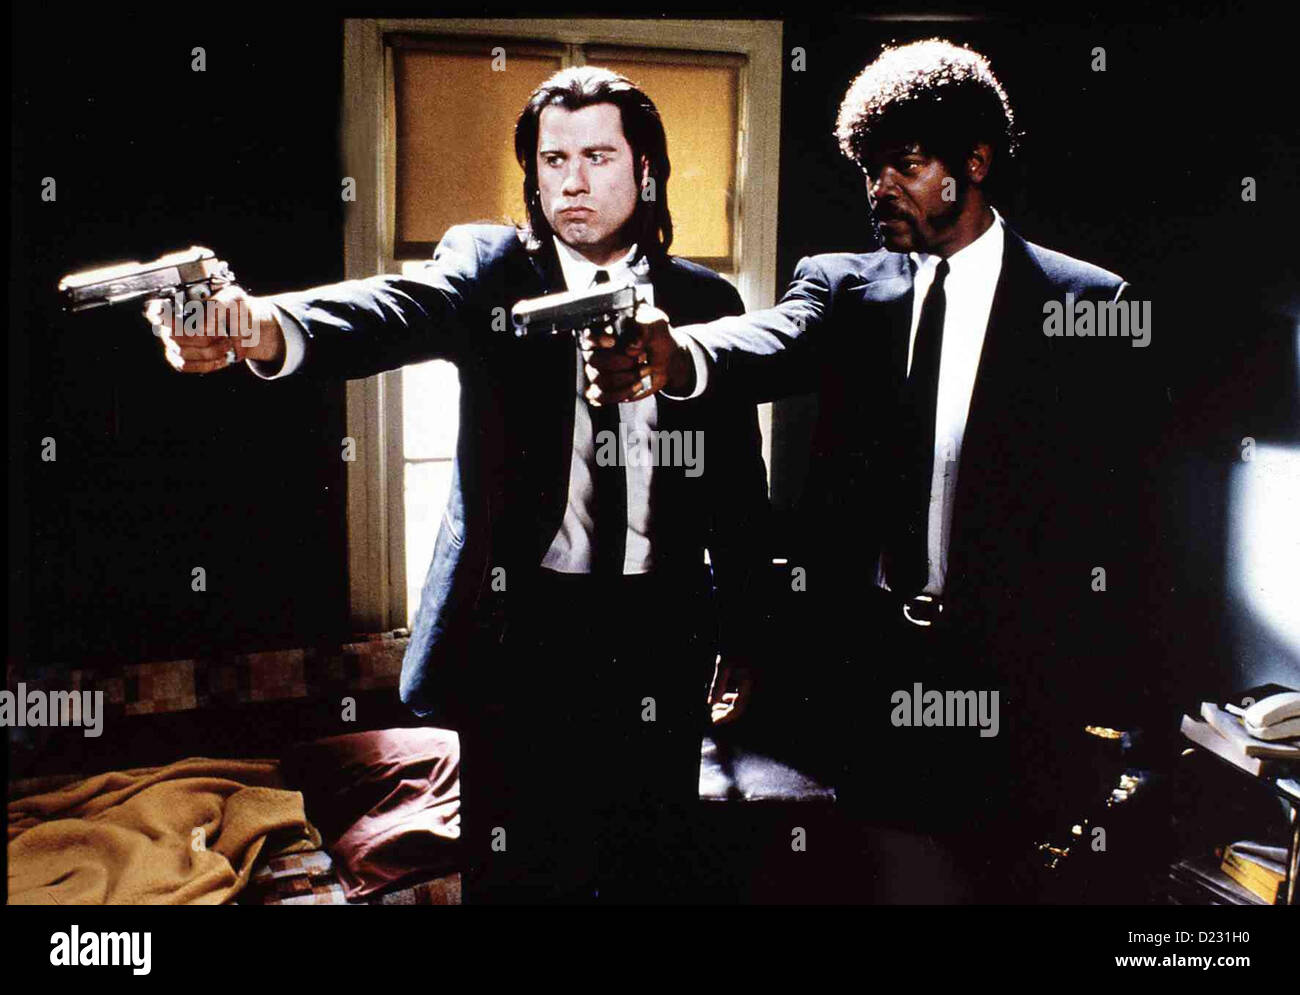 a comparison of john travolta and samuel l jackson in pulp fiction Cast jules winnfield (samuel l jackson) vincent vega (john travolta)  vincent  the role rescued the career of john travolta, who most people  doubted could  turan thought that travolta ends up being more memorable [ then jackson] only  where he learned some important things about cross- cultural differences.